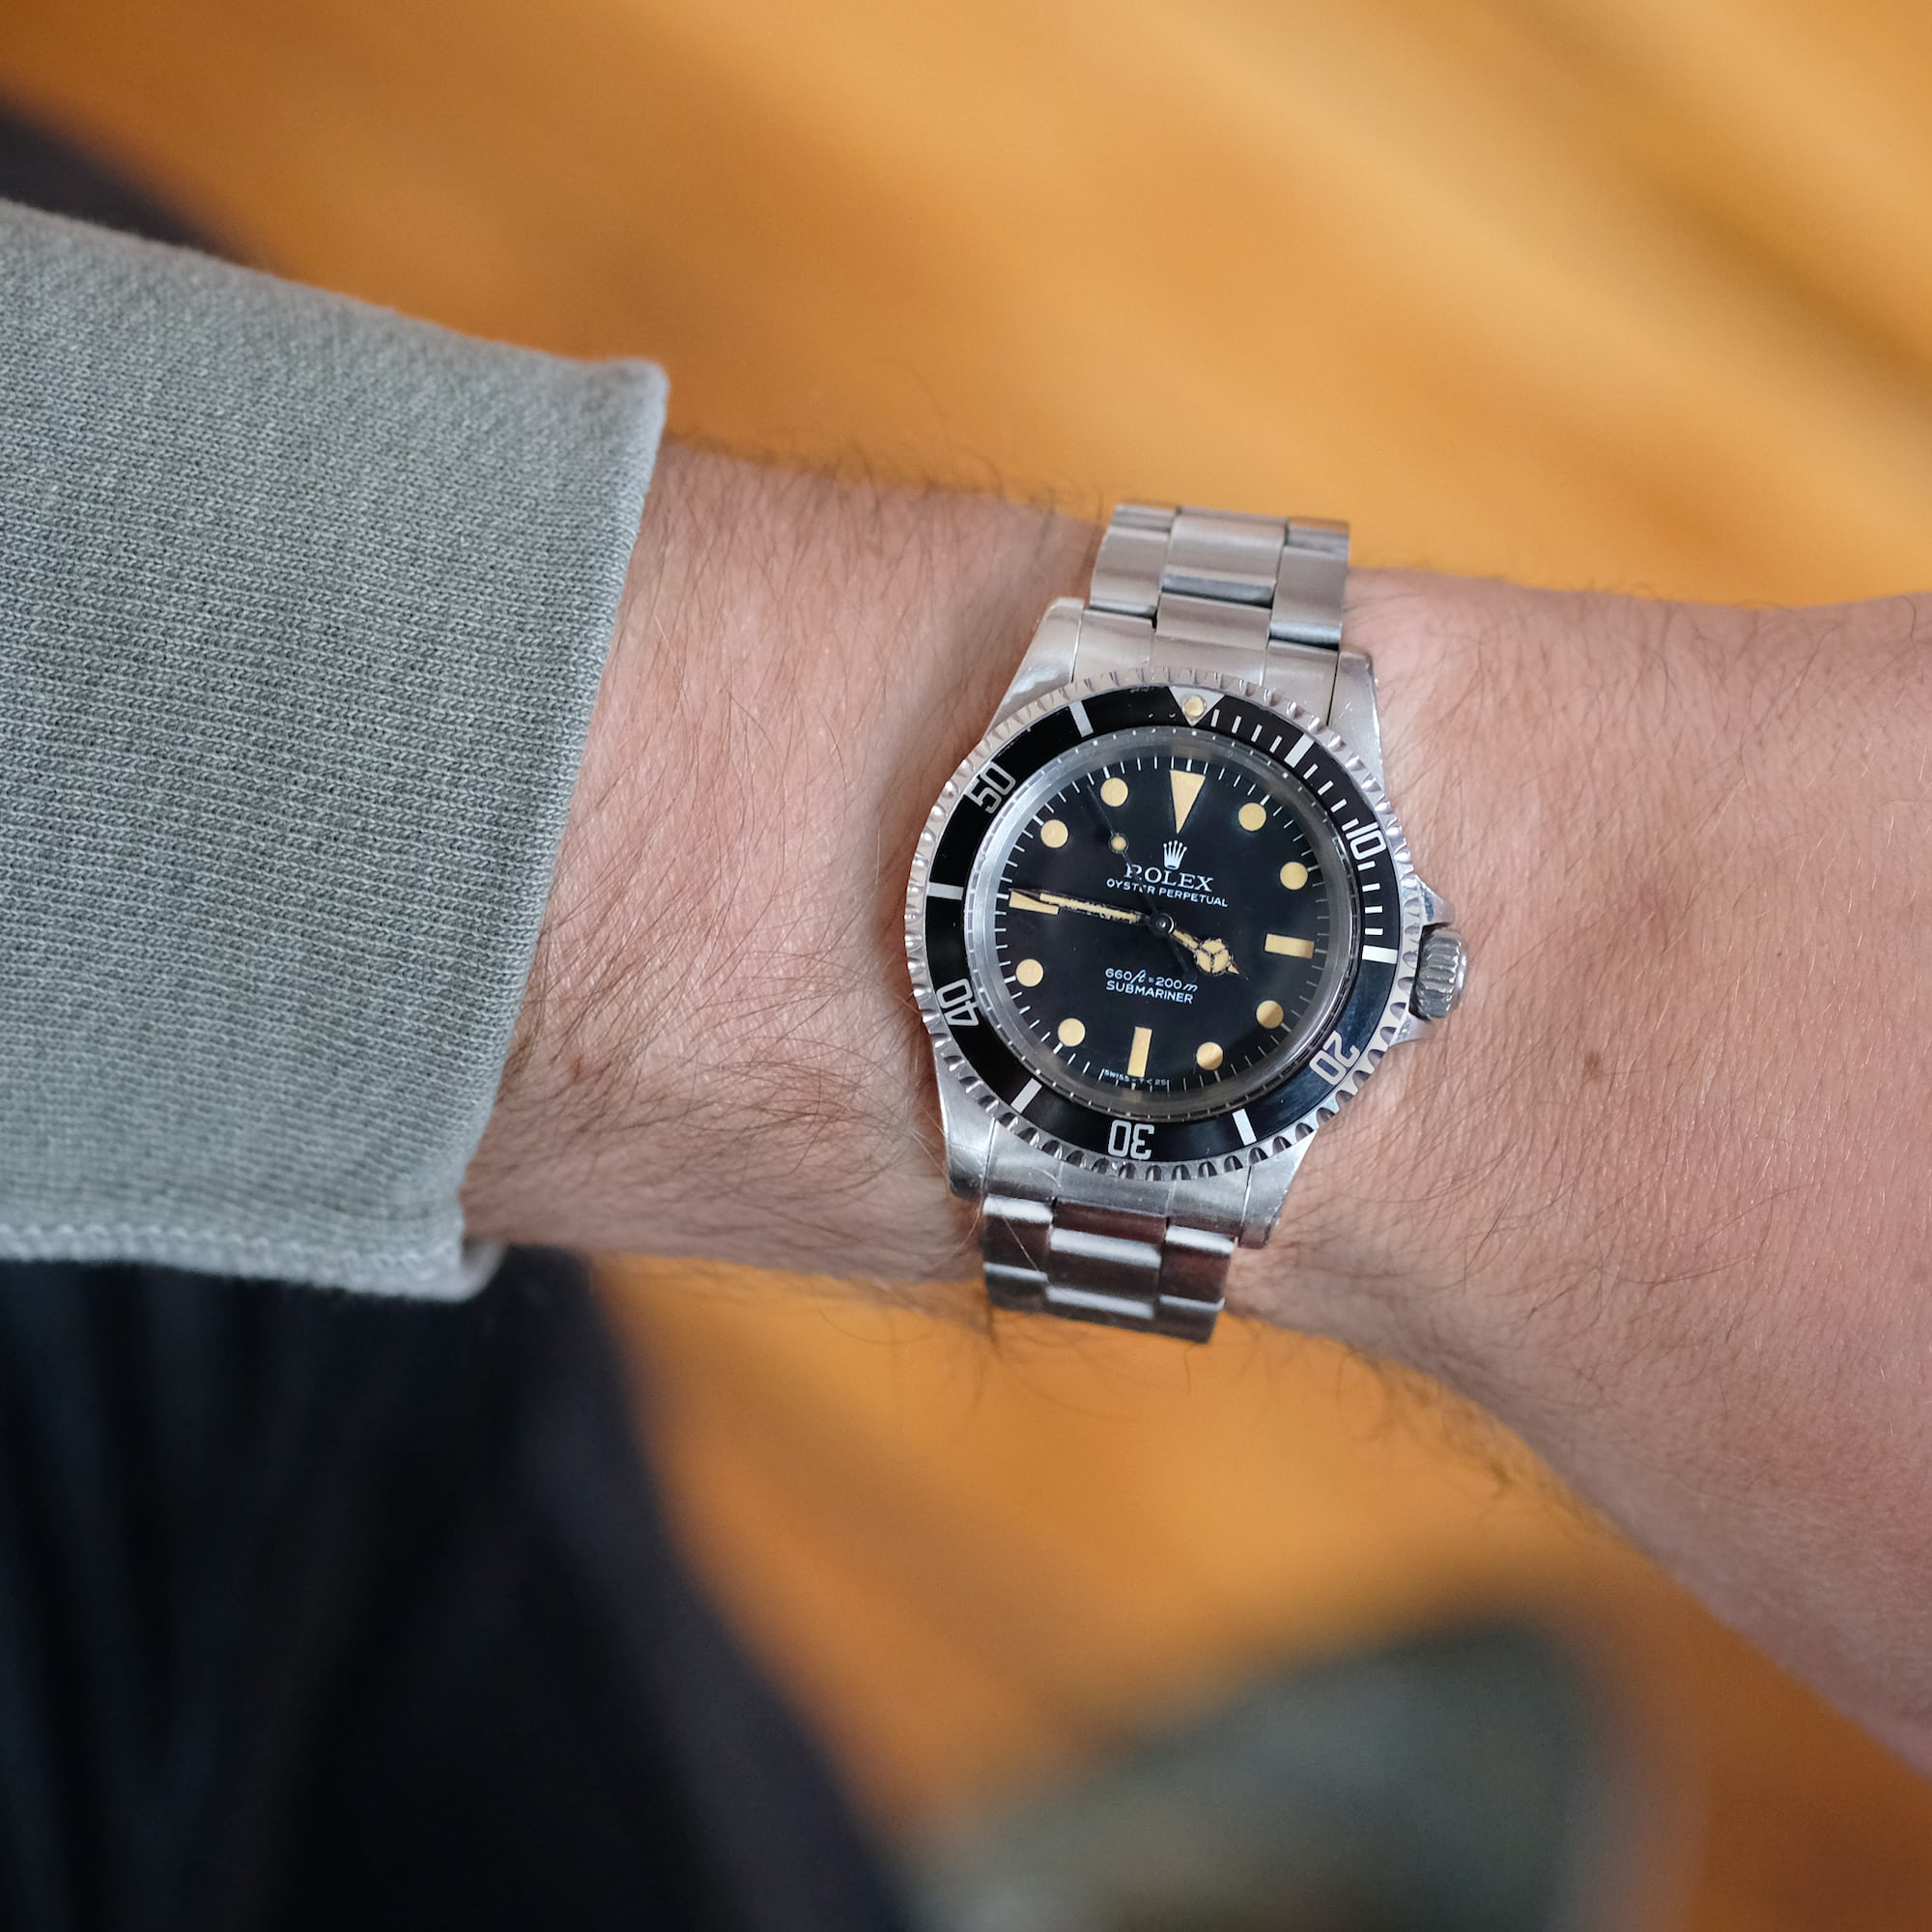 In The Shop: A 1977 Rolex Submariner Ref. 5513, A 1956 Omega Seamaster For The Olympics, And A 1970s Zenith Super Sub Sea A3736 In The Shop: A 1977 Rolex Submariner Ref. 5513, A 1956 Omega Seamaster For The Olympics, And A 1970s Zenith Super Sub Sea A3736 Select 6